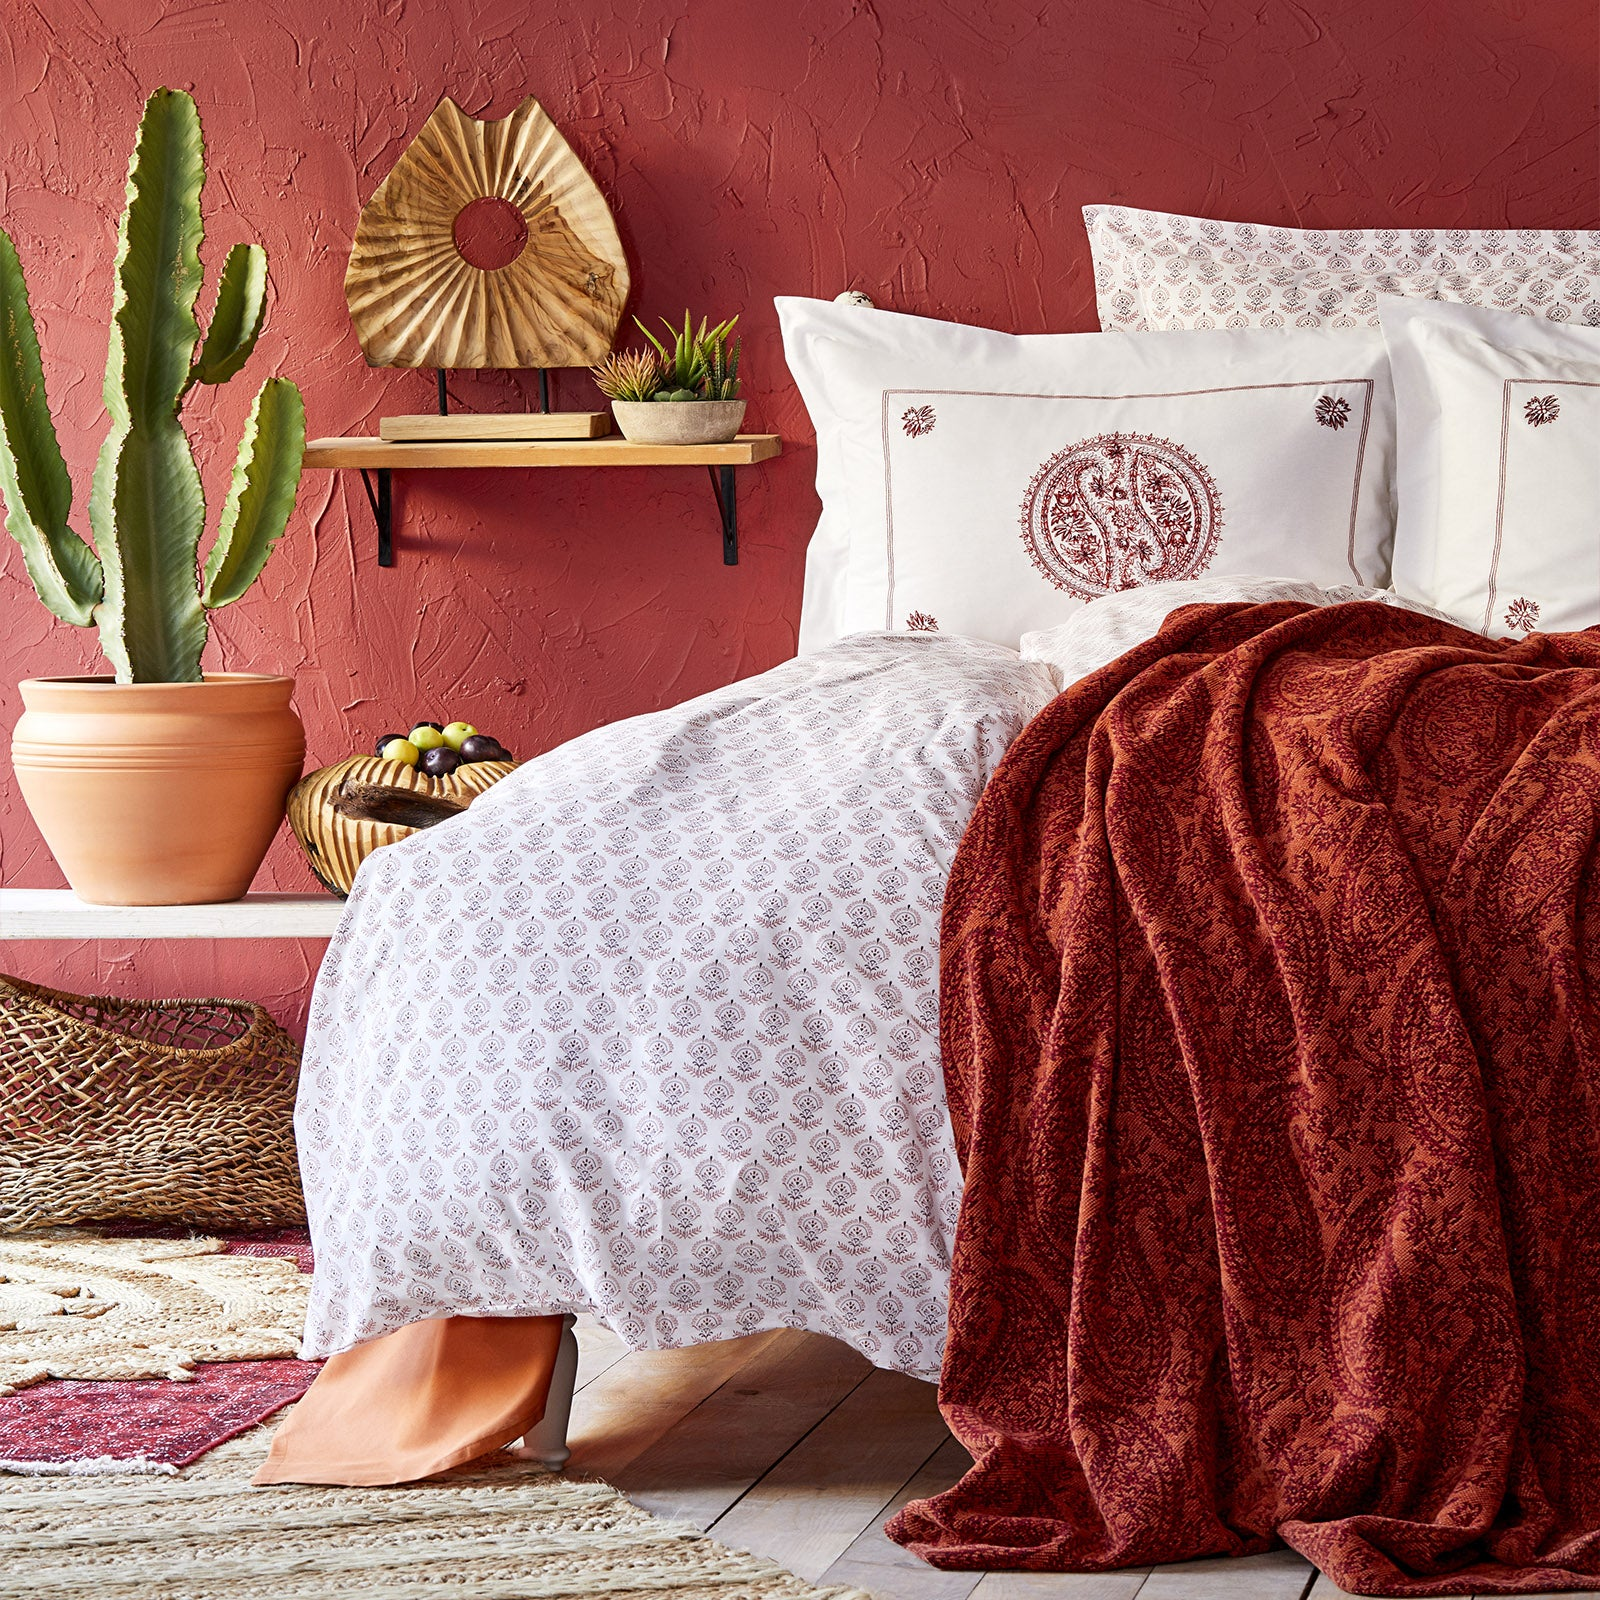 ALLEY nish Bedding  Set 200.54.15.0049  200.15.01.0108 - ebarza